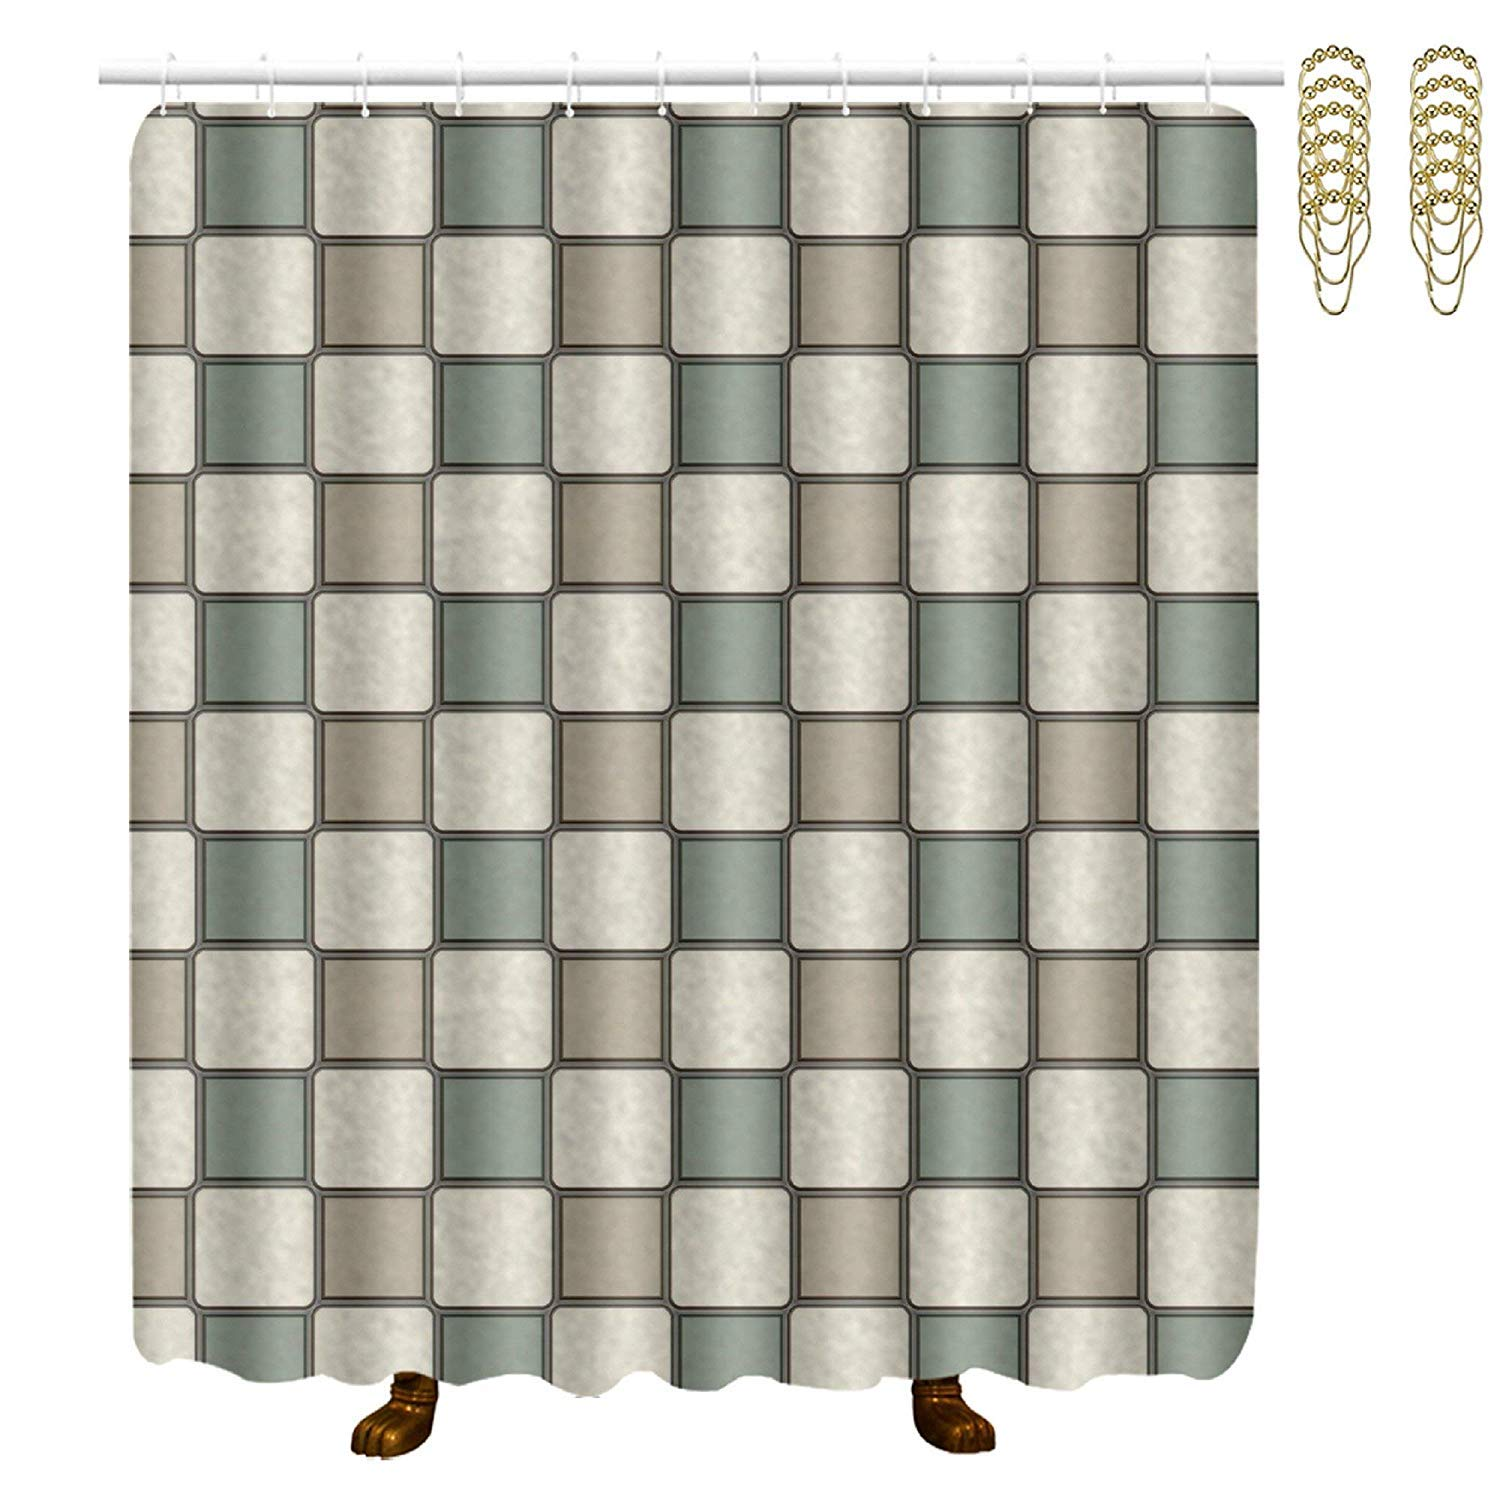 COVASA Decorative Water Repellant Shower Curtain 72x72 Inches Comes with 12 Hooks (Abstract Geometry Simple Block)